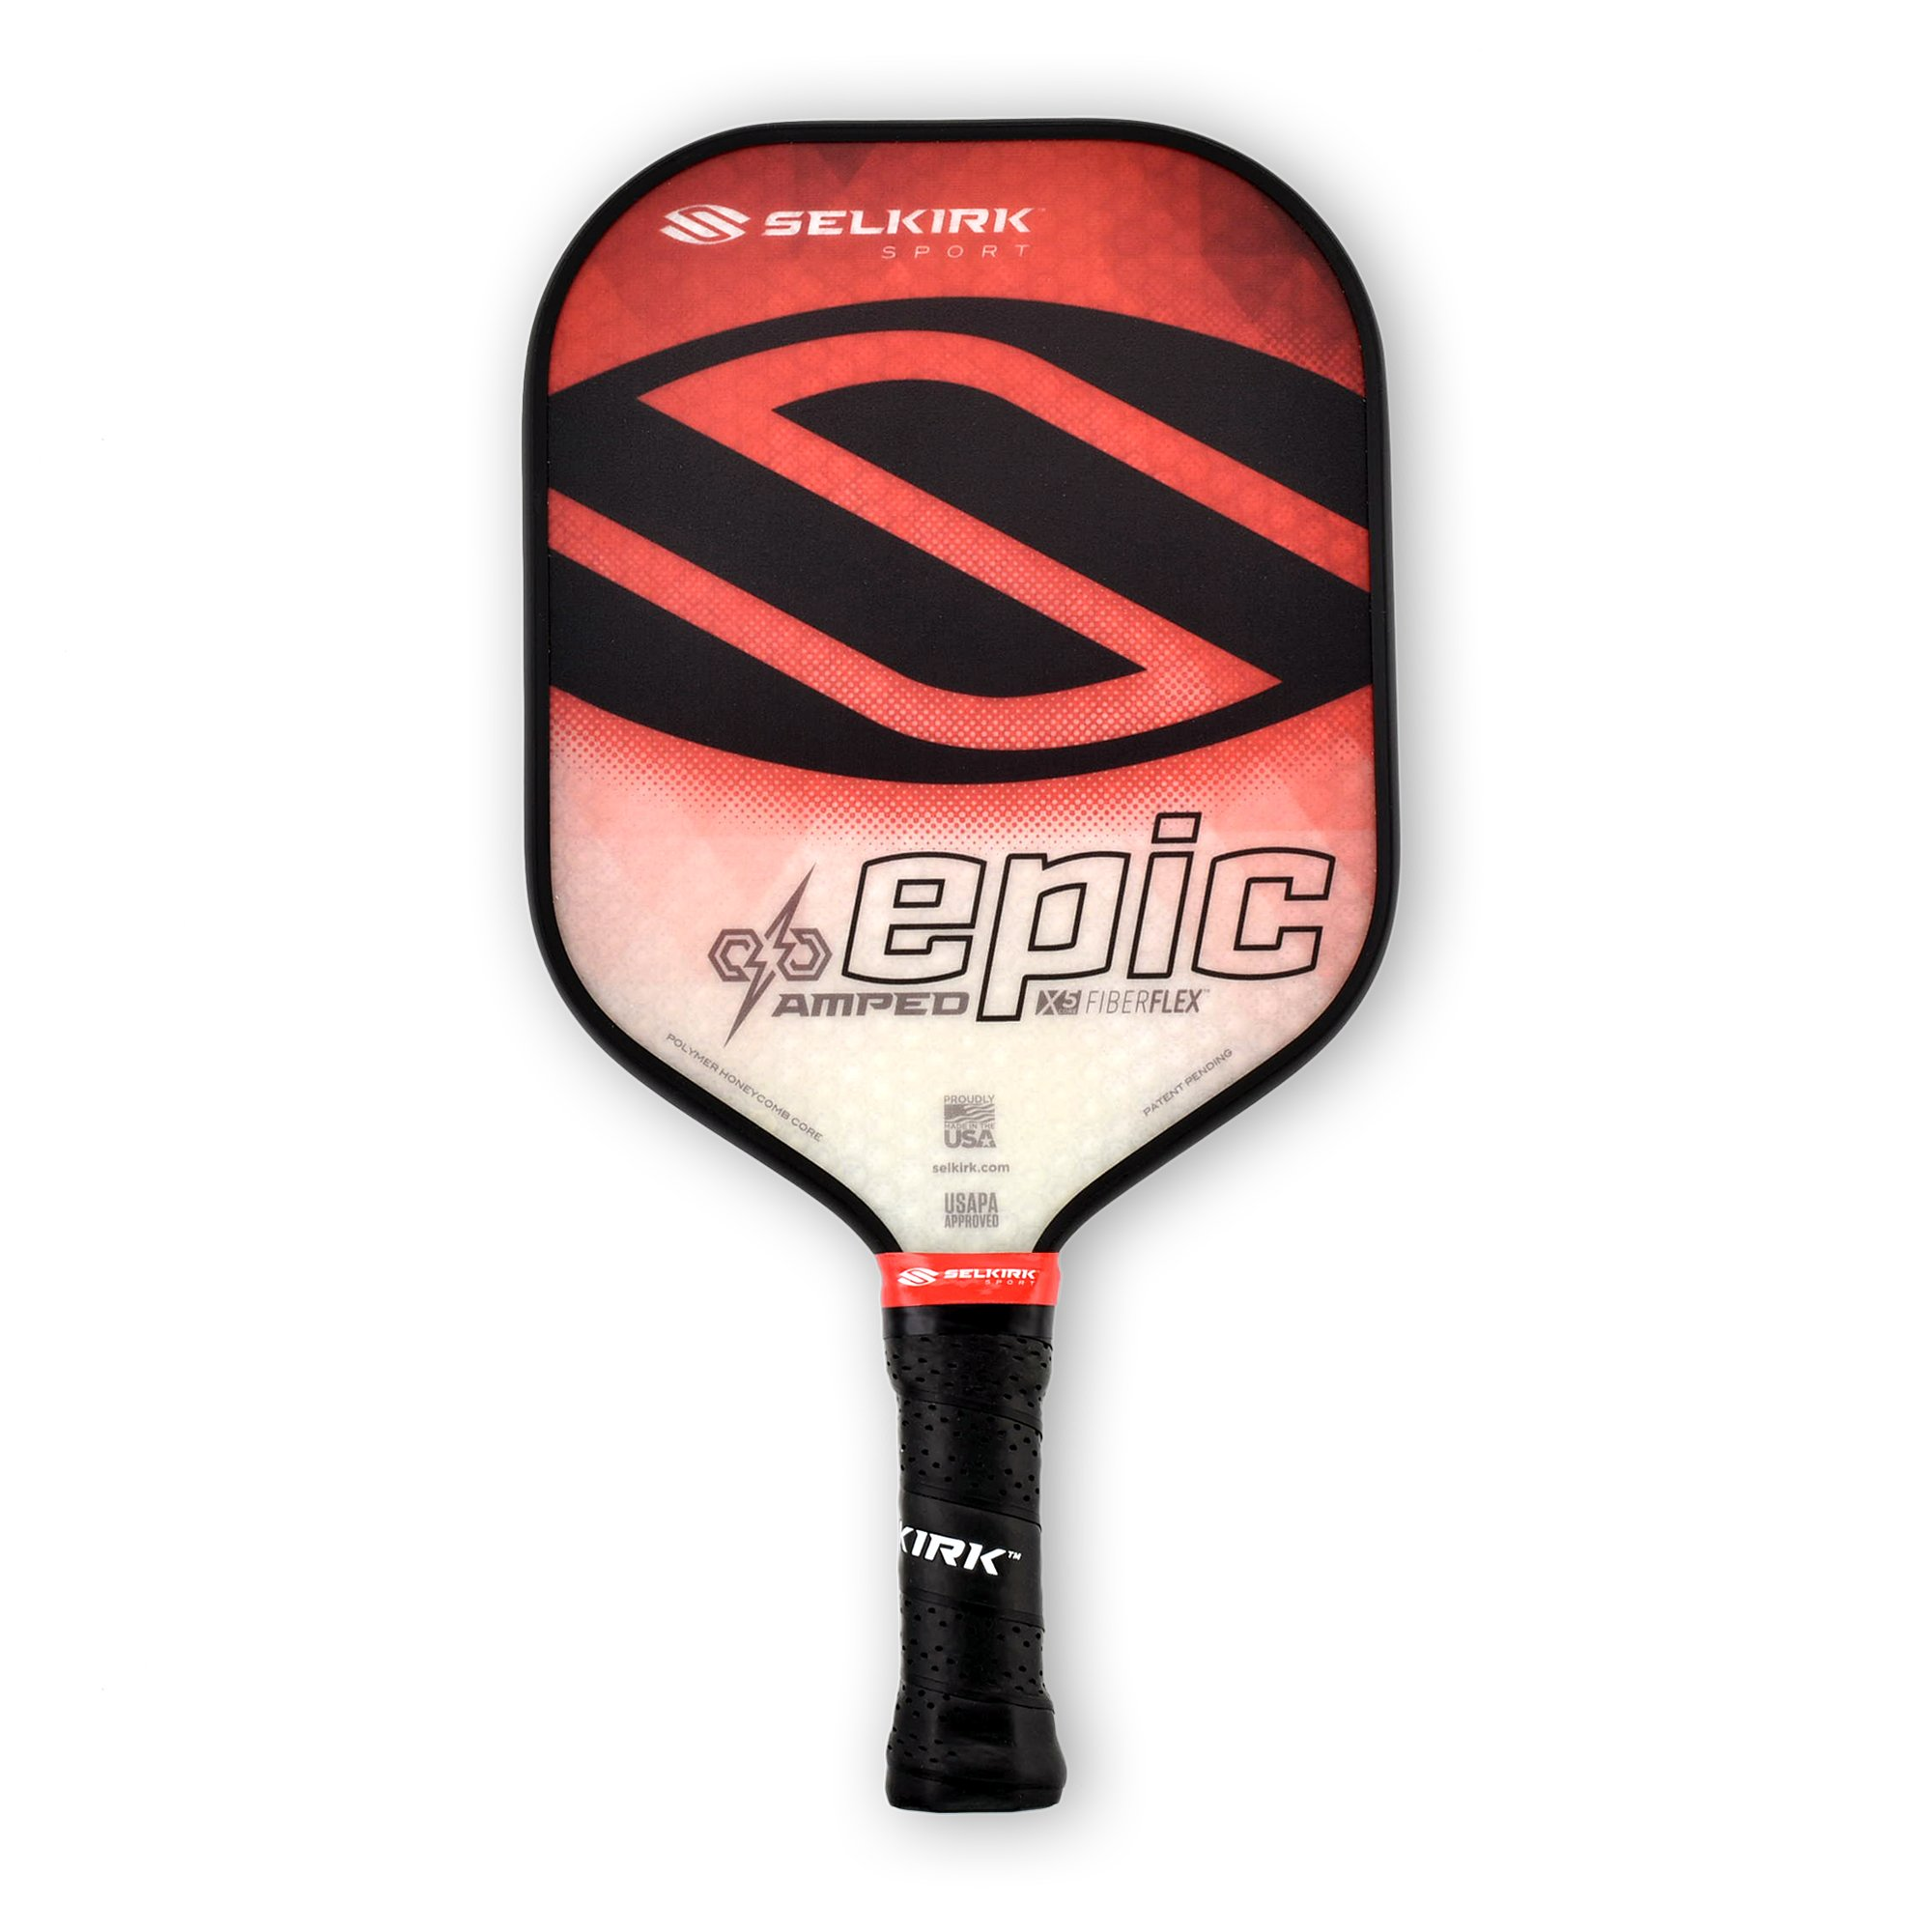 Selkirk Amped Pickleball Paddle - USAPA Approved - X5 Polypropylene Core - FiberFlex Fiberglass Face - 5 Sizes: Epic, S2, Omni, Maxima, and INVIKTA (Epic Midweight - Ruby Red)